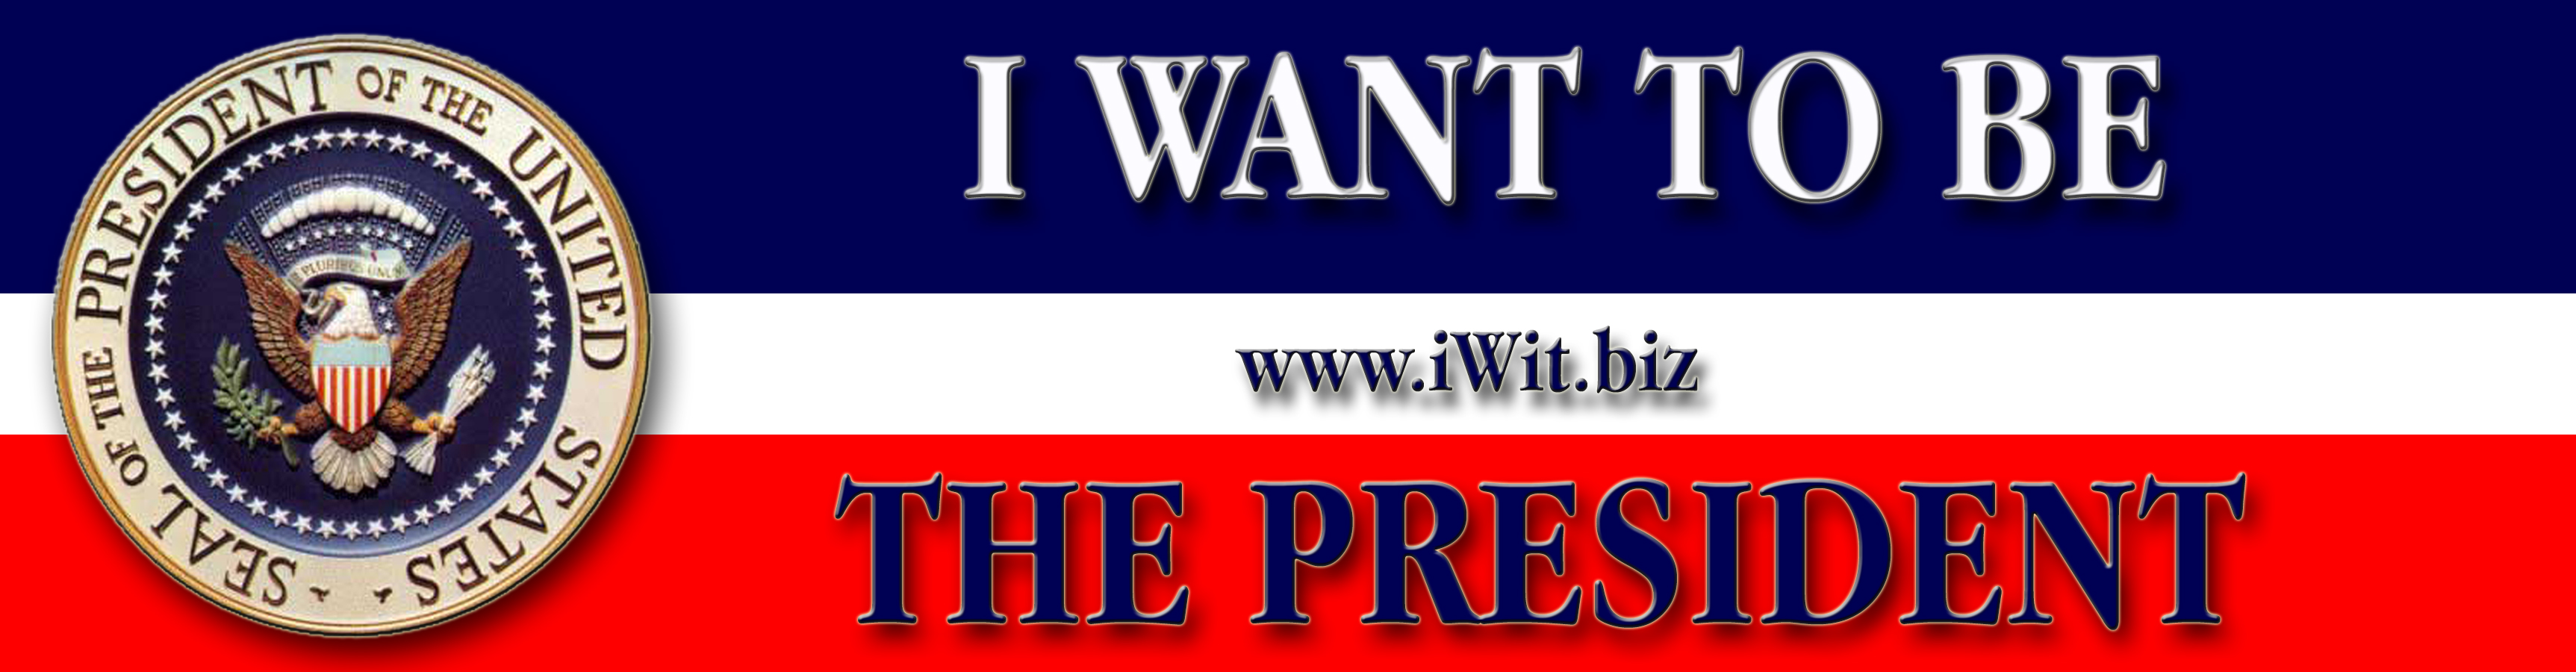 The President by Wit  Bumpersticker 9